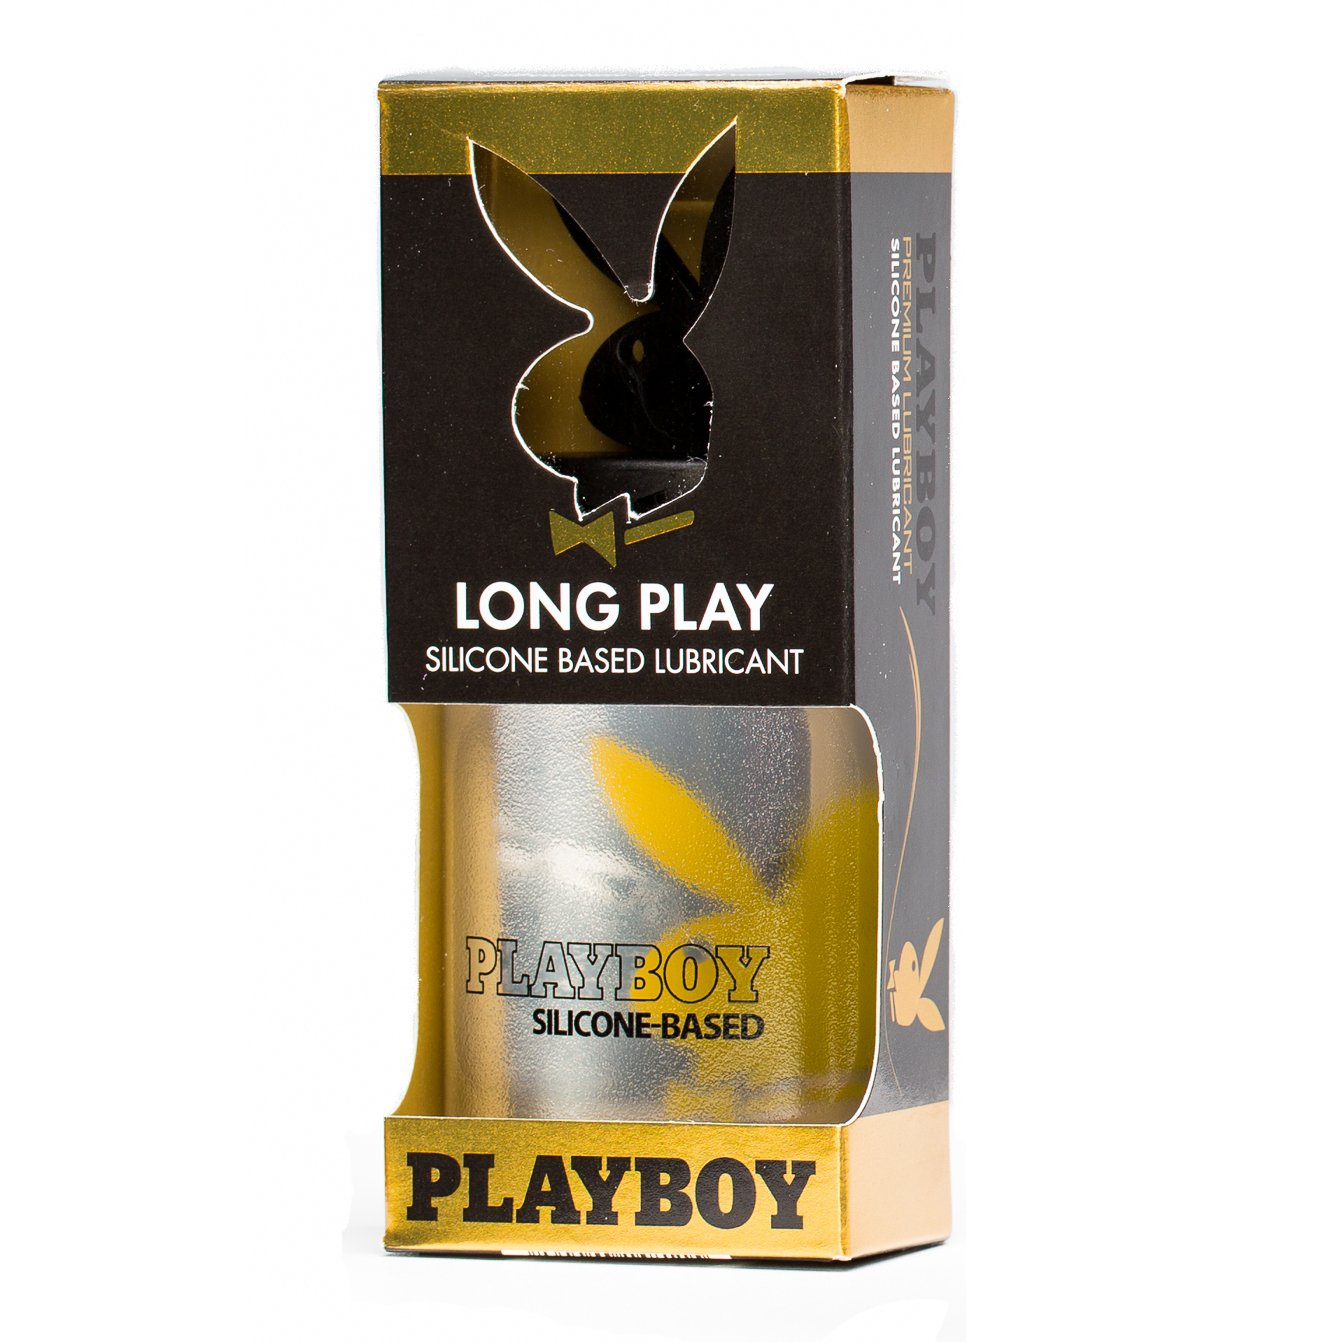 PLAYBOY lubrikační gel LONG PLAY